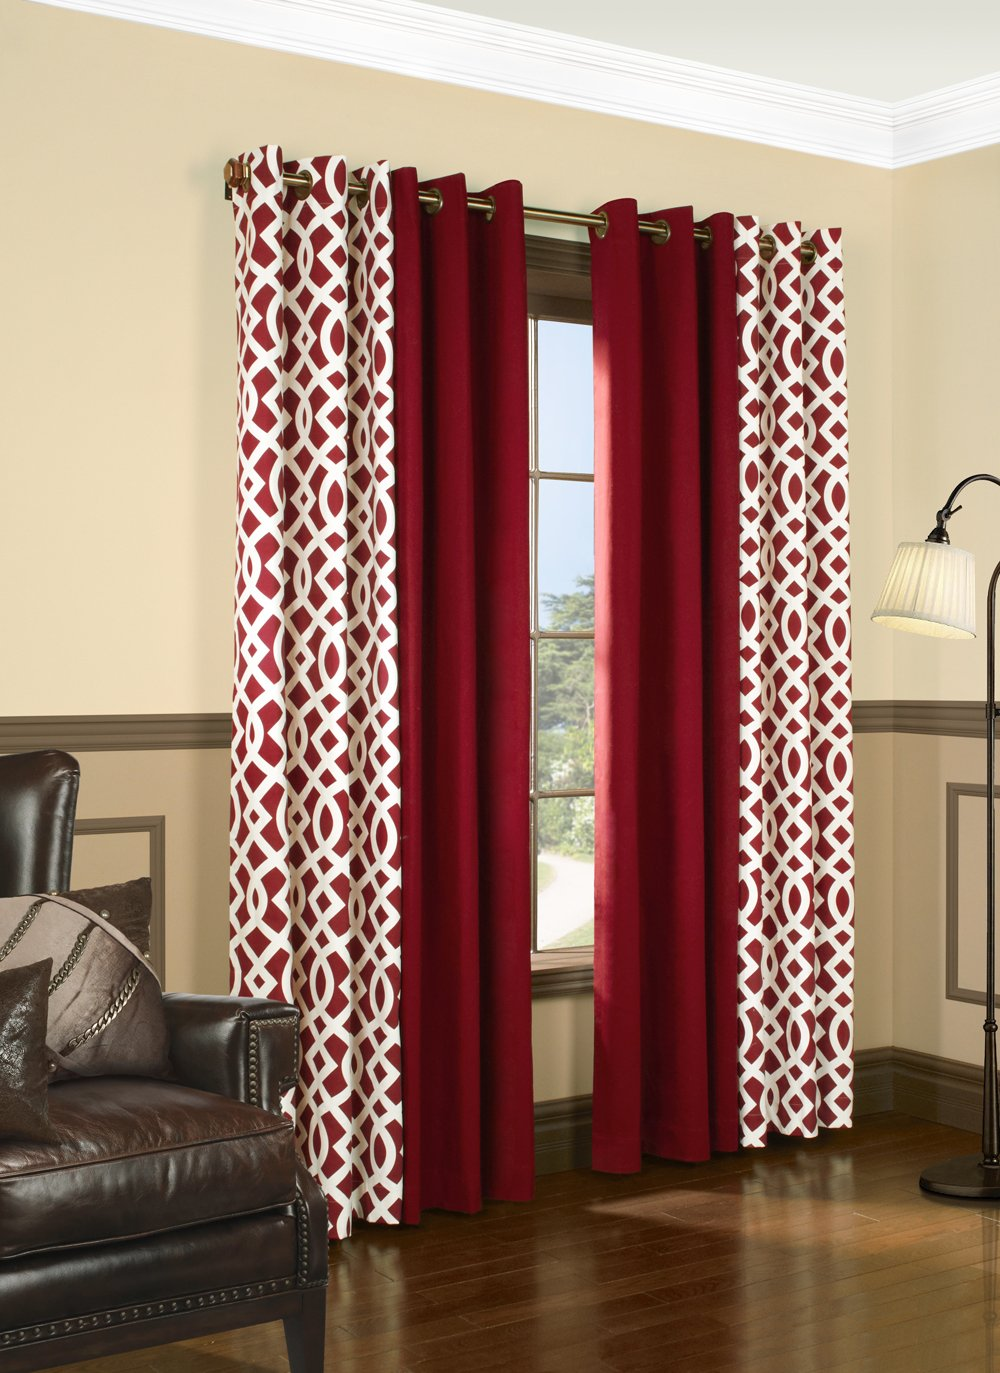 drapes grey striped curtain trellis design red bedroom pocket and awesome panel with rod unique curtains sheer inch